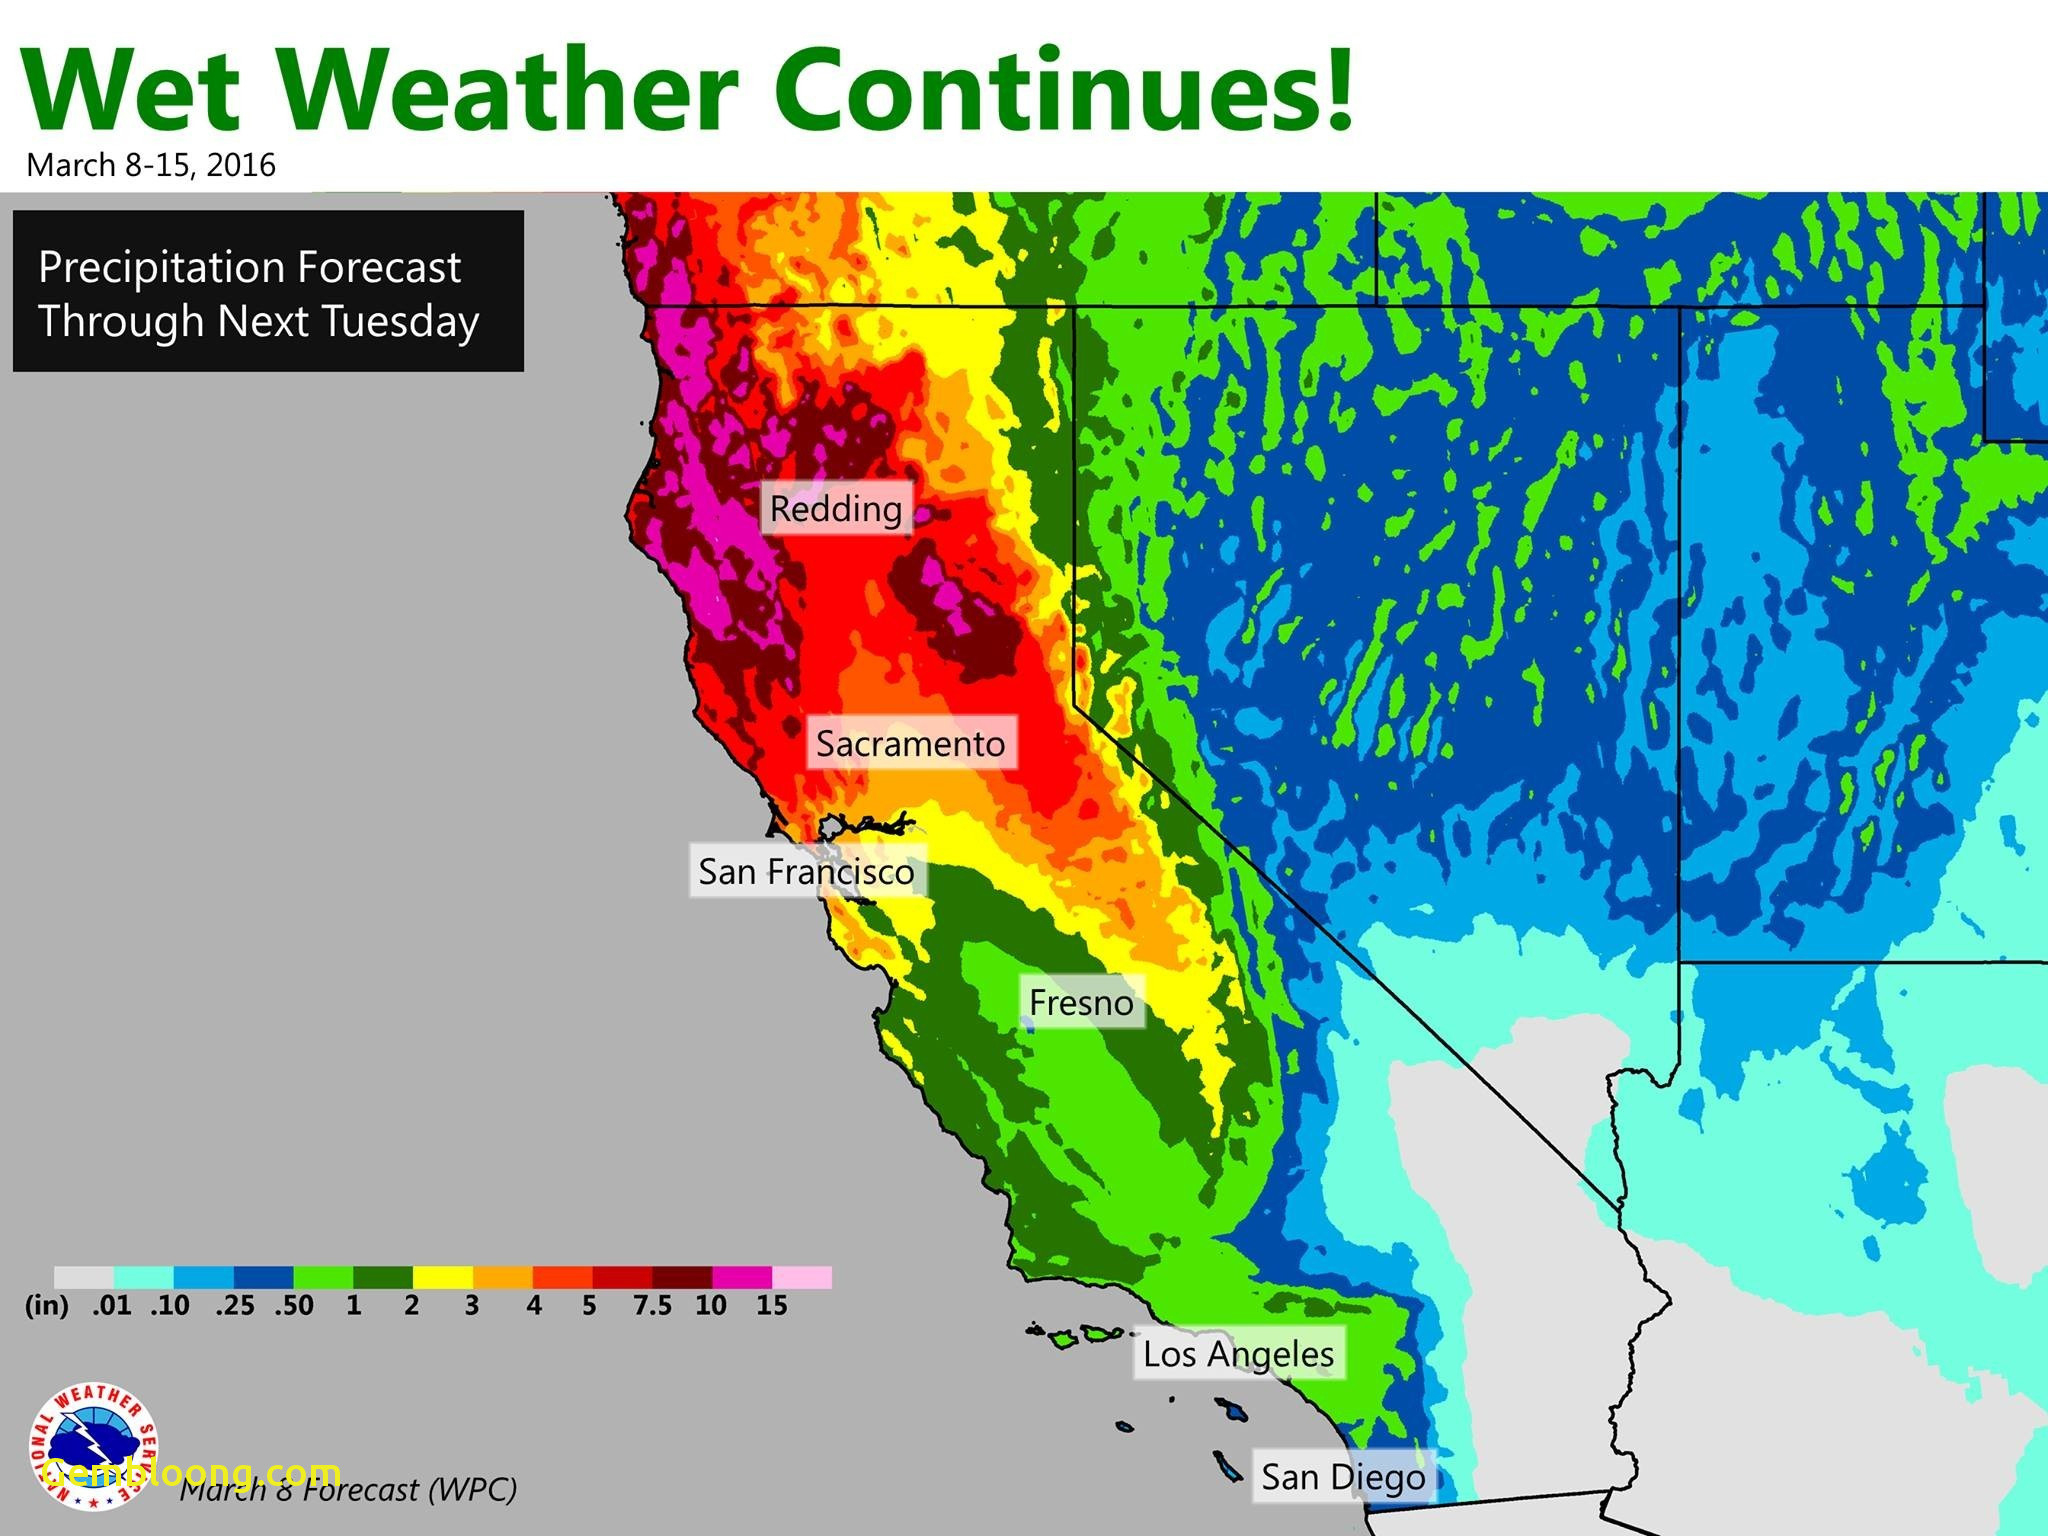 Southern California Weather Map Smart Ideas - World Map - Southern California Weather Map